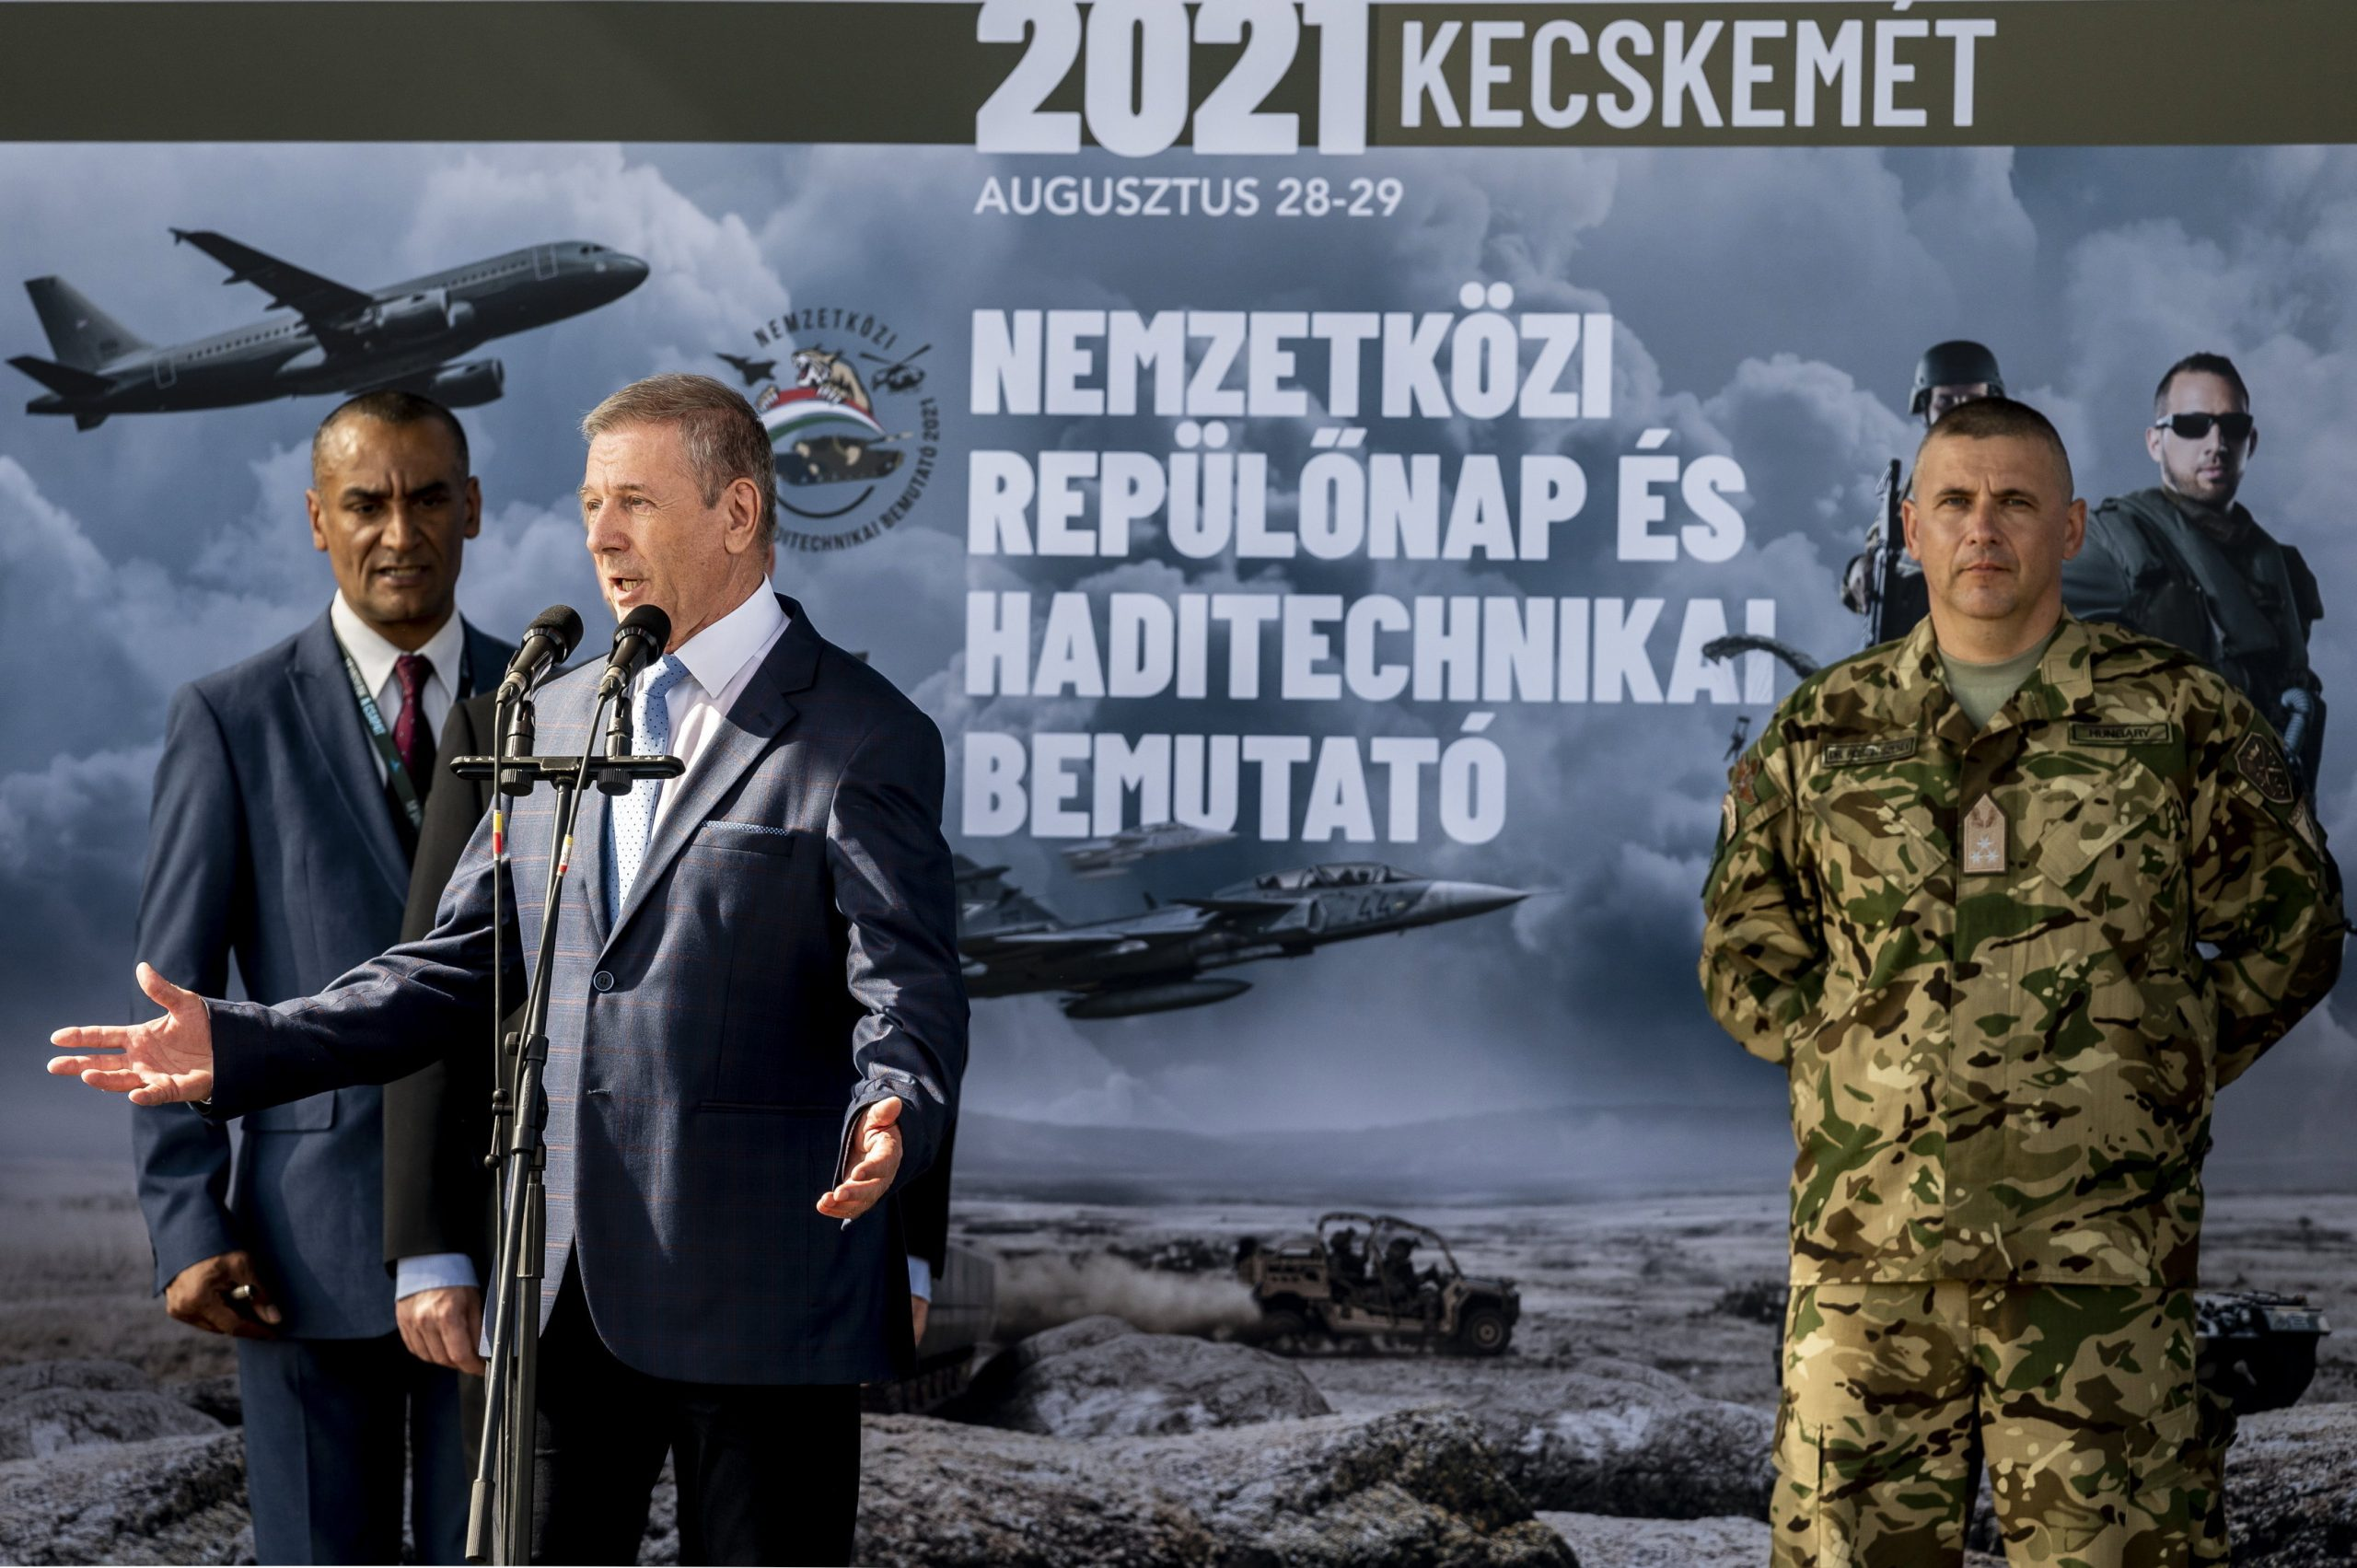 Defence Minister: Strong Hungary 'Unimaginable' without Strong Army